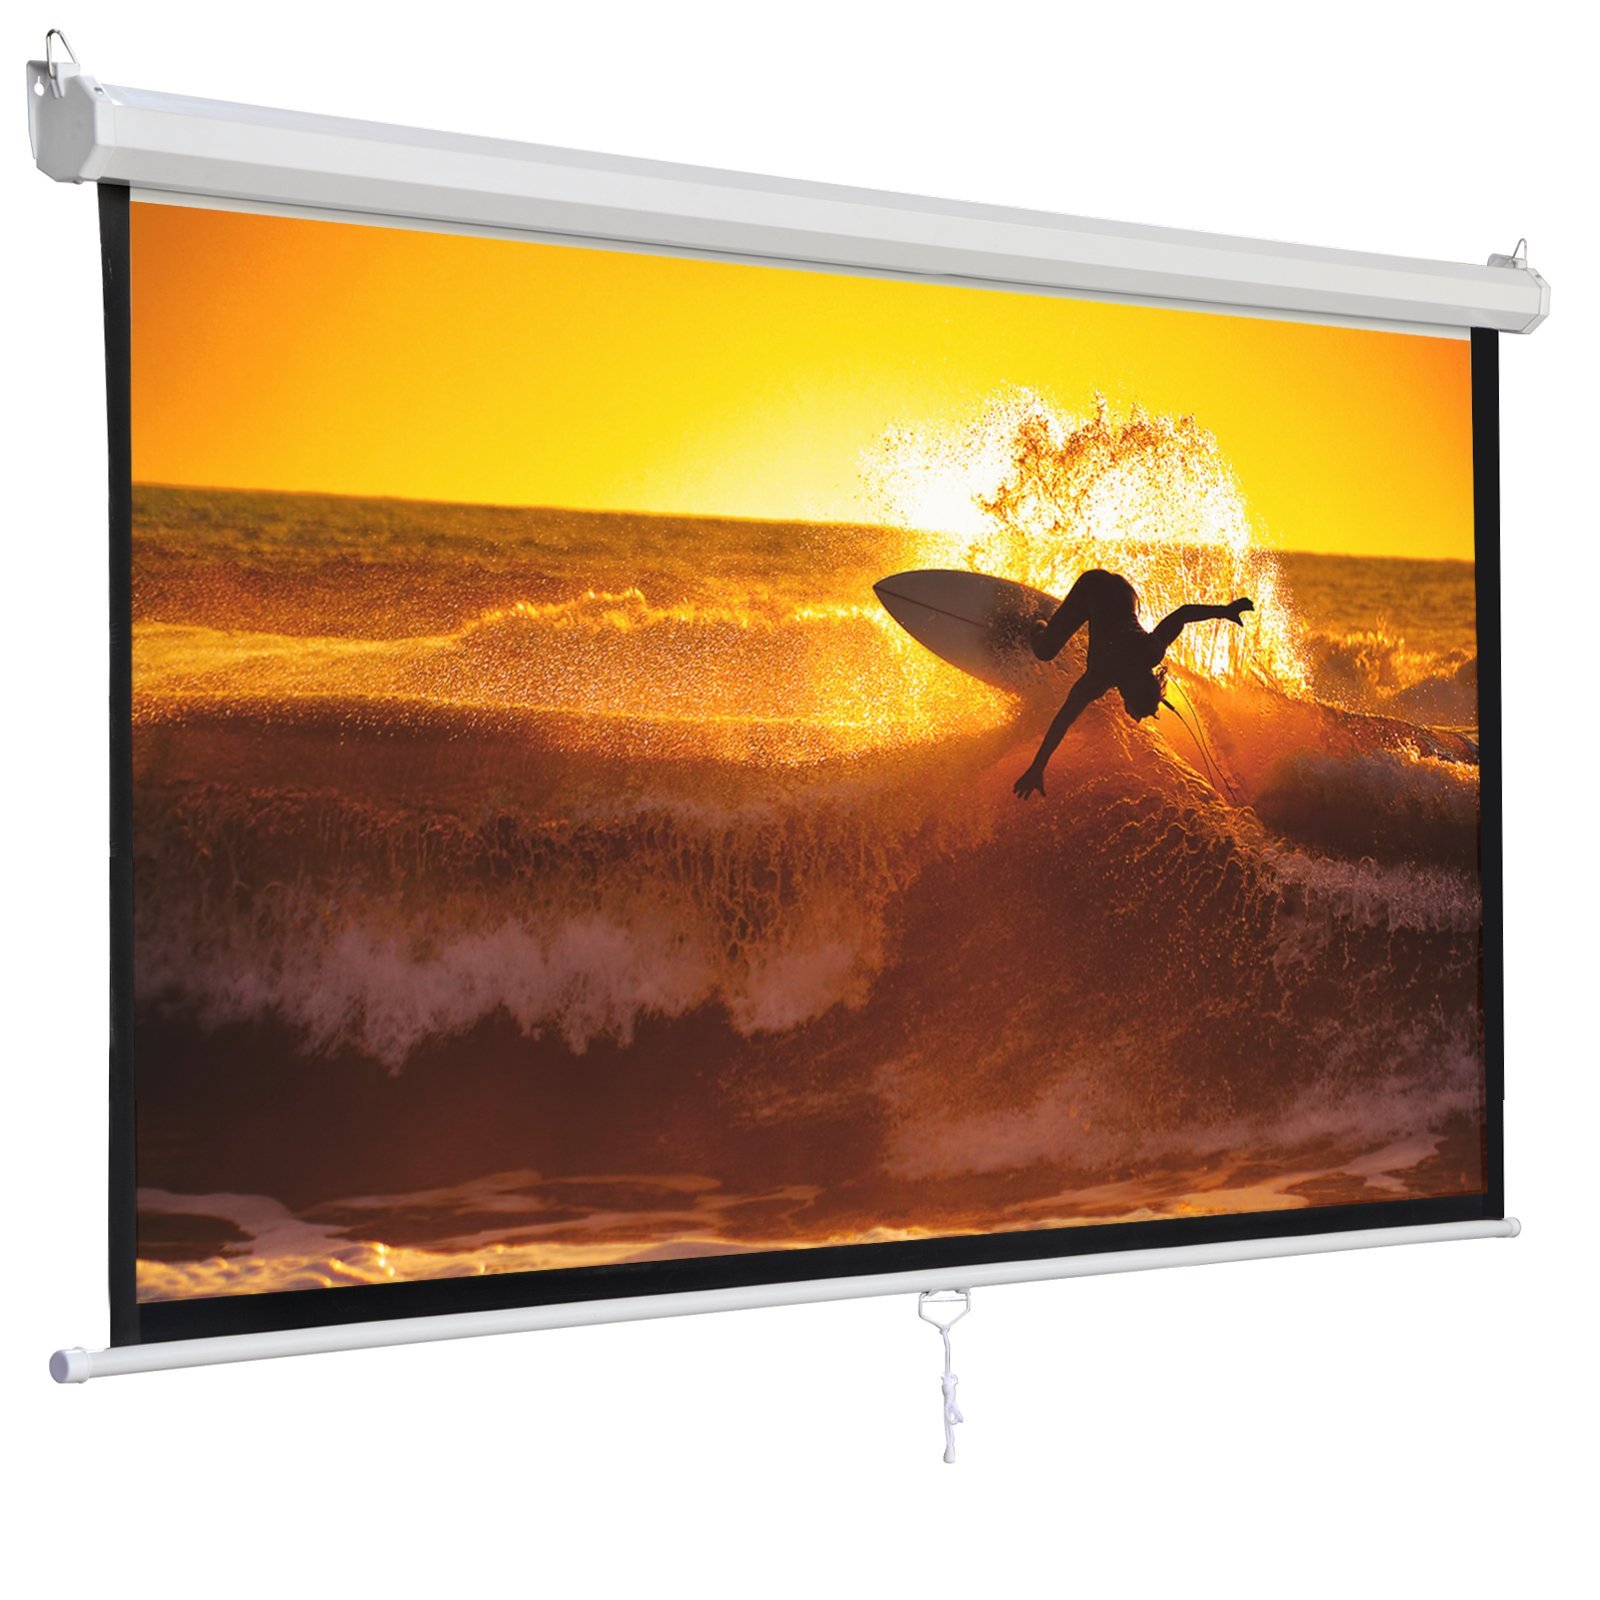 SUPER DEAL 120'' Projector Screen Projection Screen Manual Pull Down HD Screen 1:1 Format for Home Cinema Theater Presentation Education Outdoor Indoor Public Display by SUPER DEAL (Image #9)